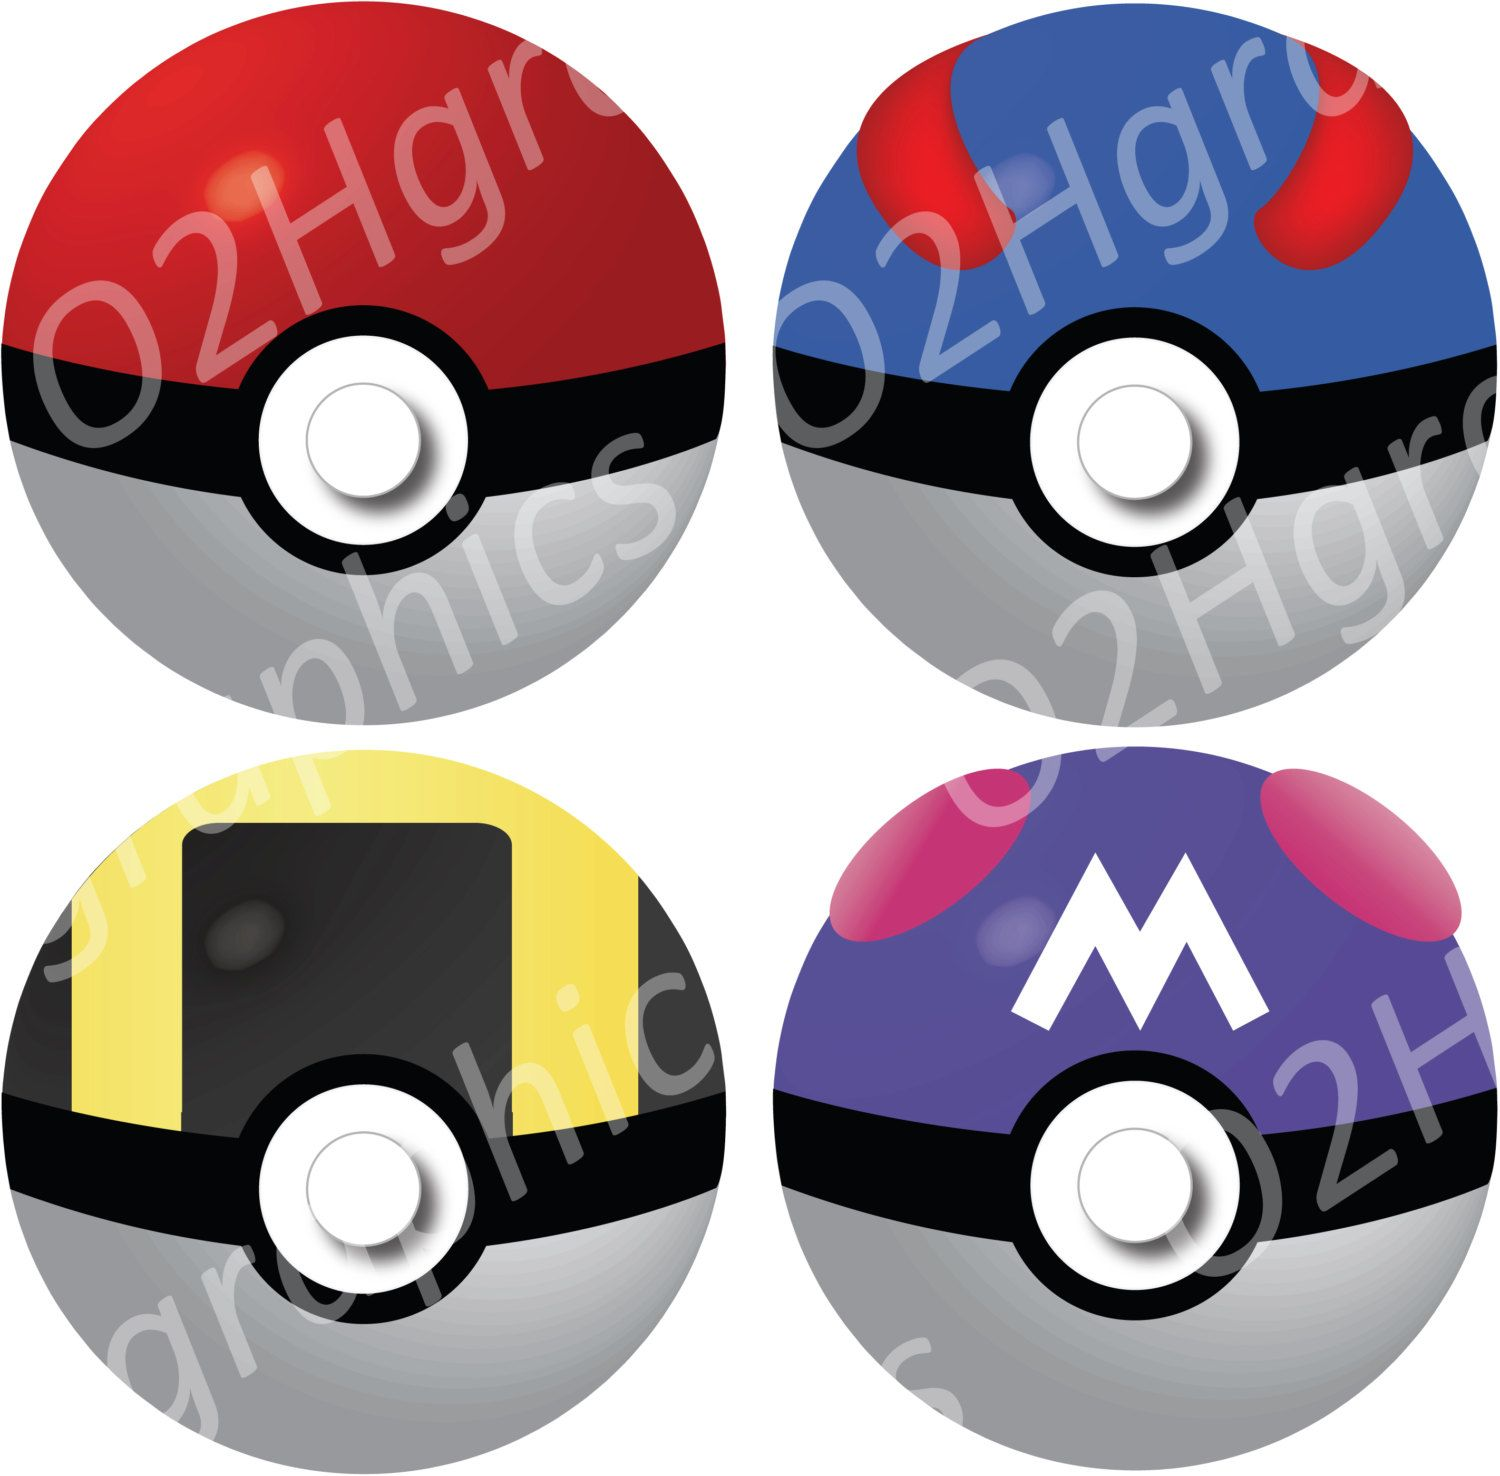 pokemon clipart pokeball clip art vector clipart digital rh pinterest ie commercial use clipart for teachers royalty free commercial use clipart